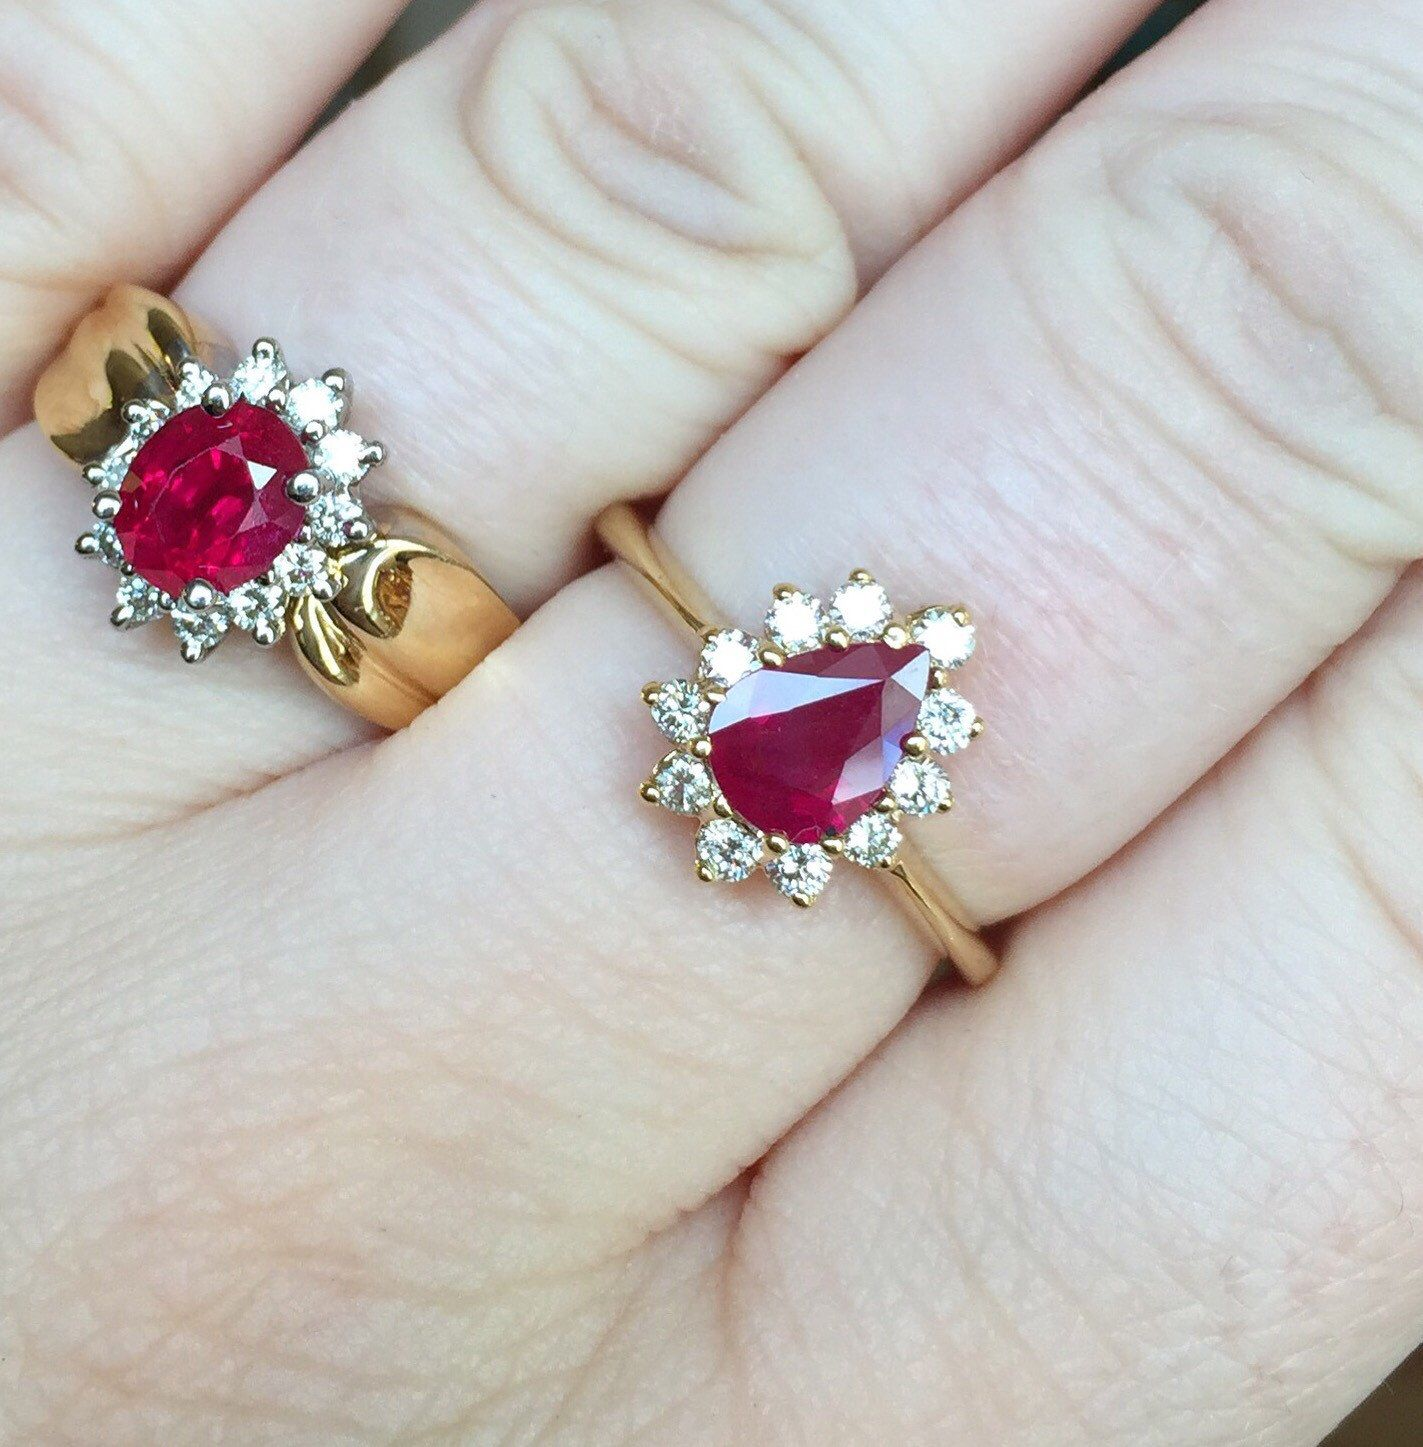 18k ruby and diamond ring from my Etsy shop https://www.etsy.com/listing/475190712/18k-yellow-gold-114ct-ruby-and-027ct